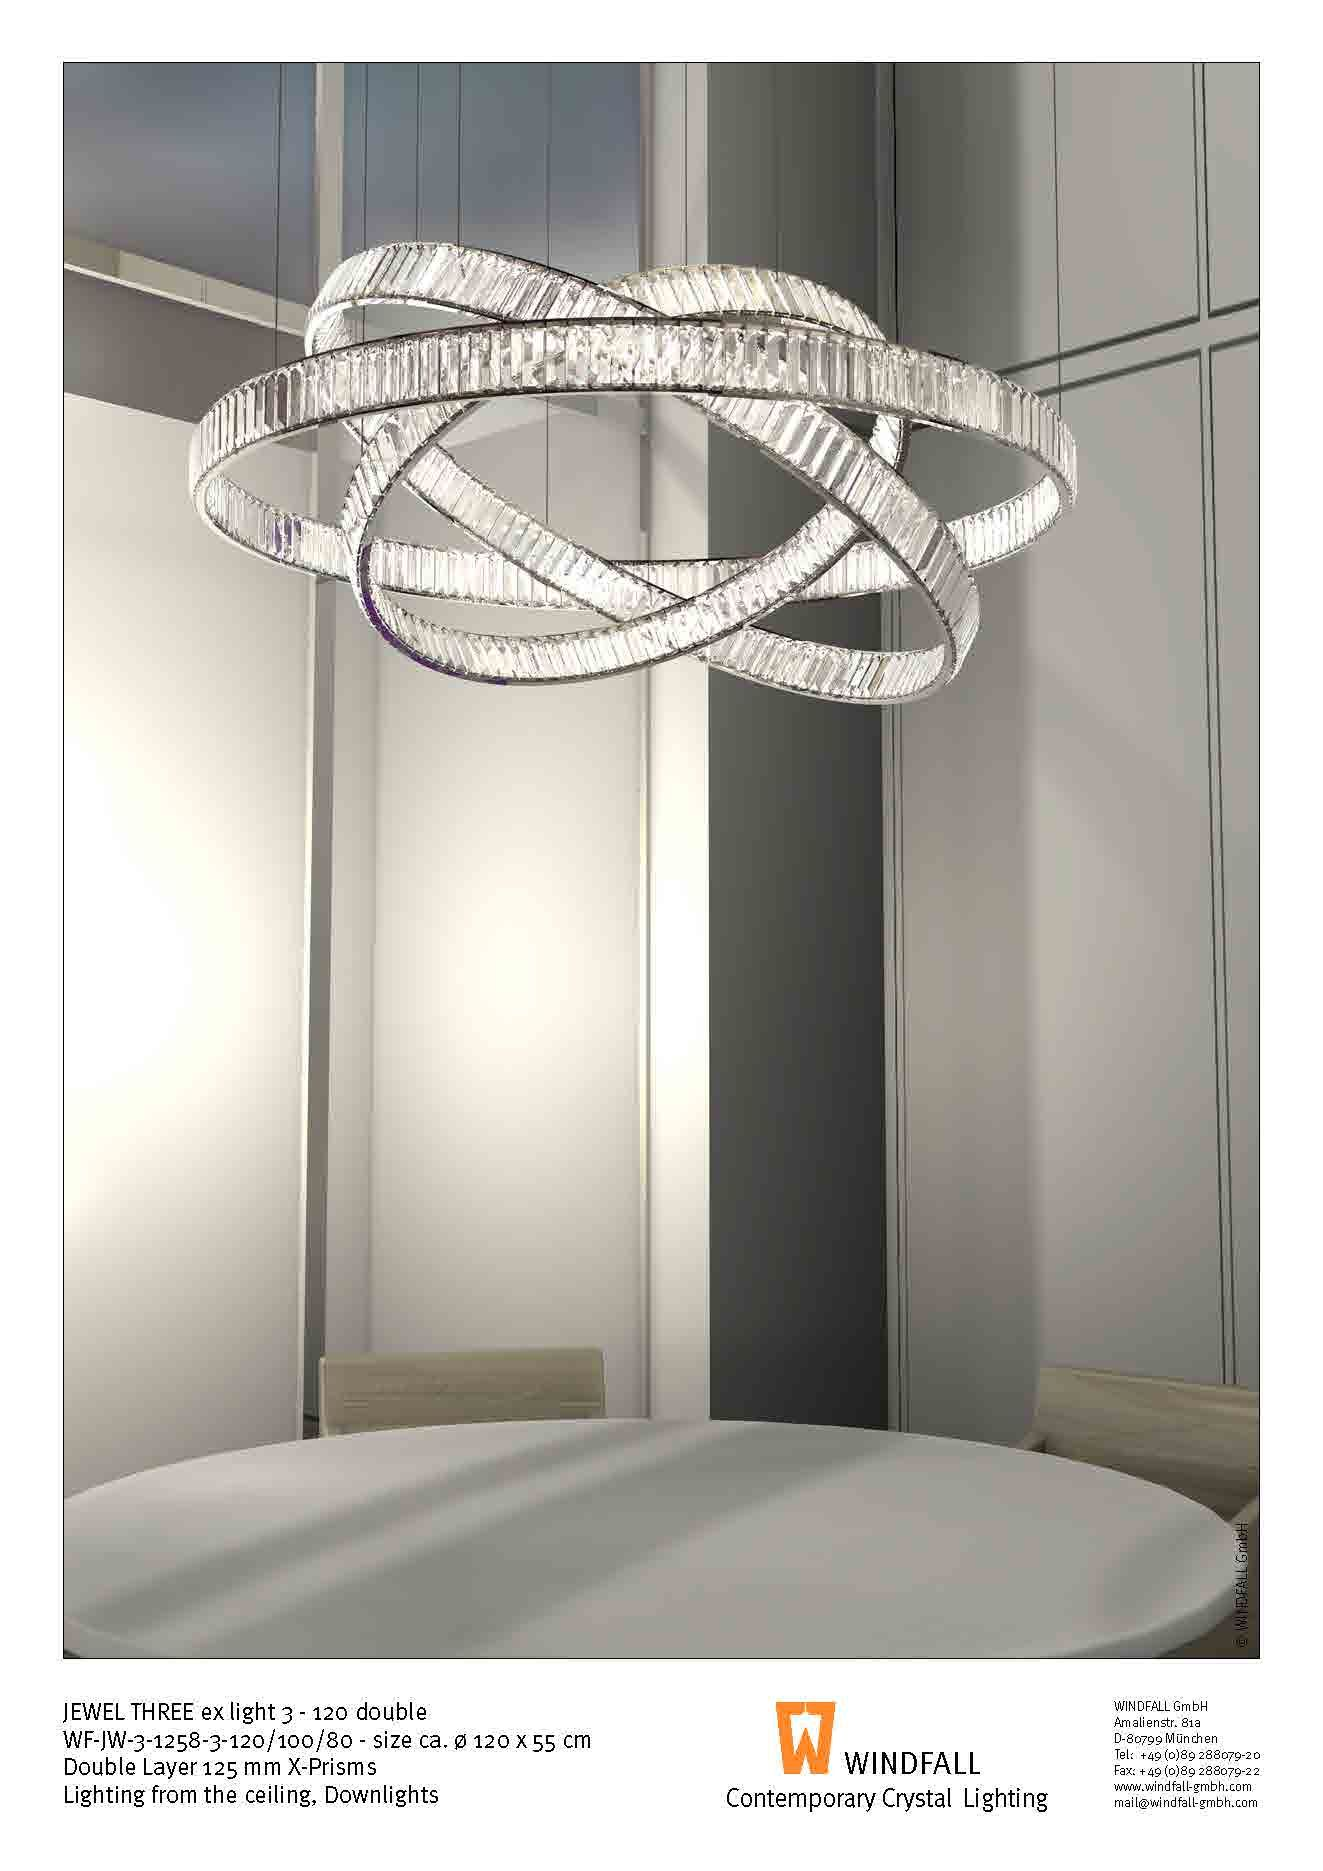 The Jewel Three Ex Light By Windfall Illuminated By Ceiling Down